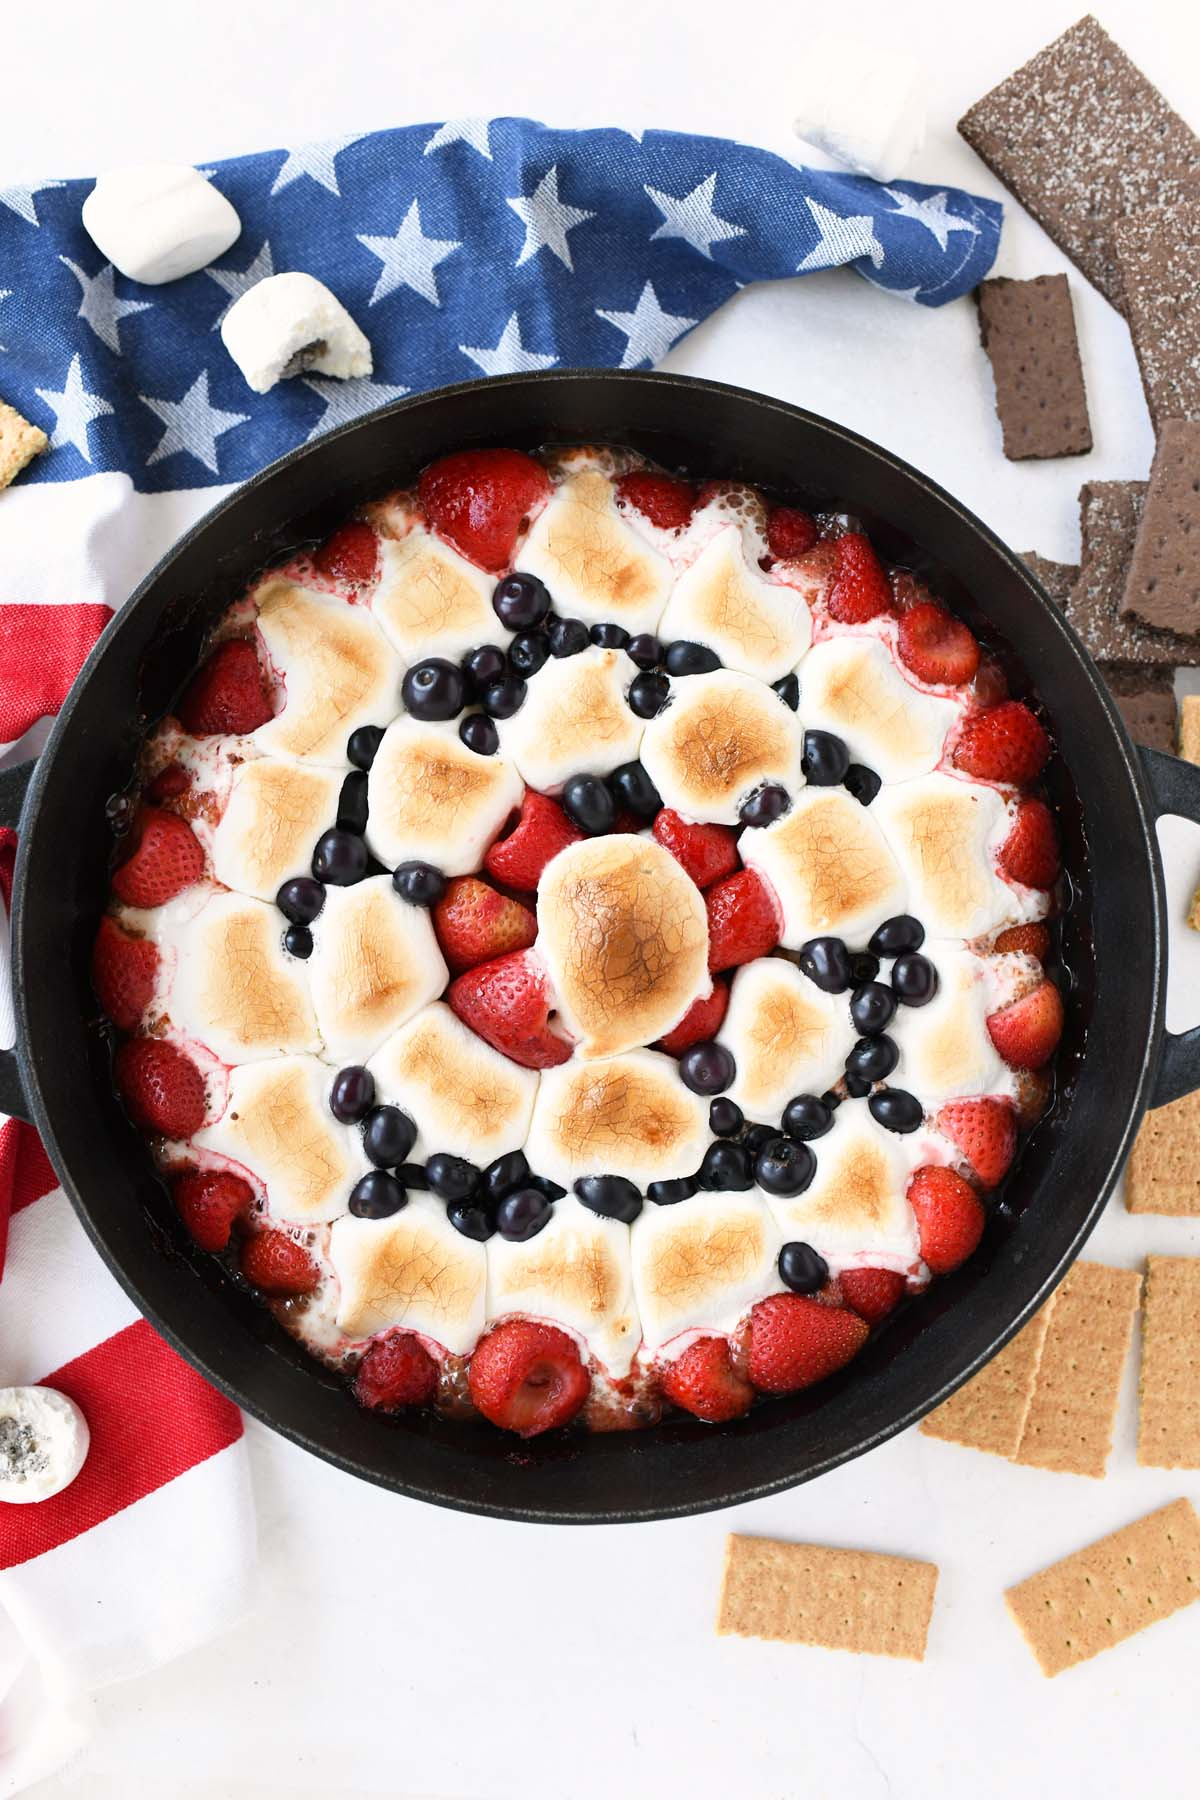 S'mores Berry Skillet Dip with a patriotic napkin.